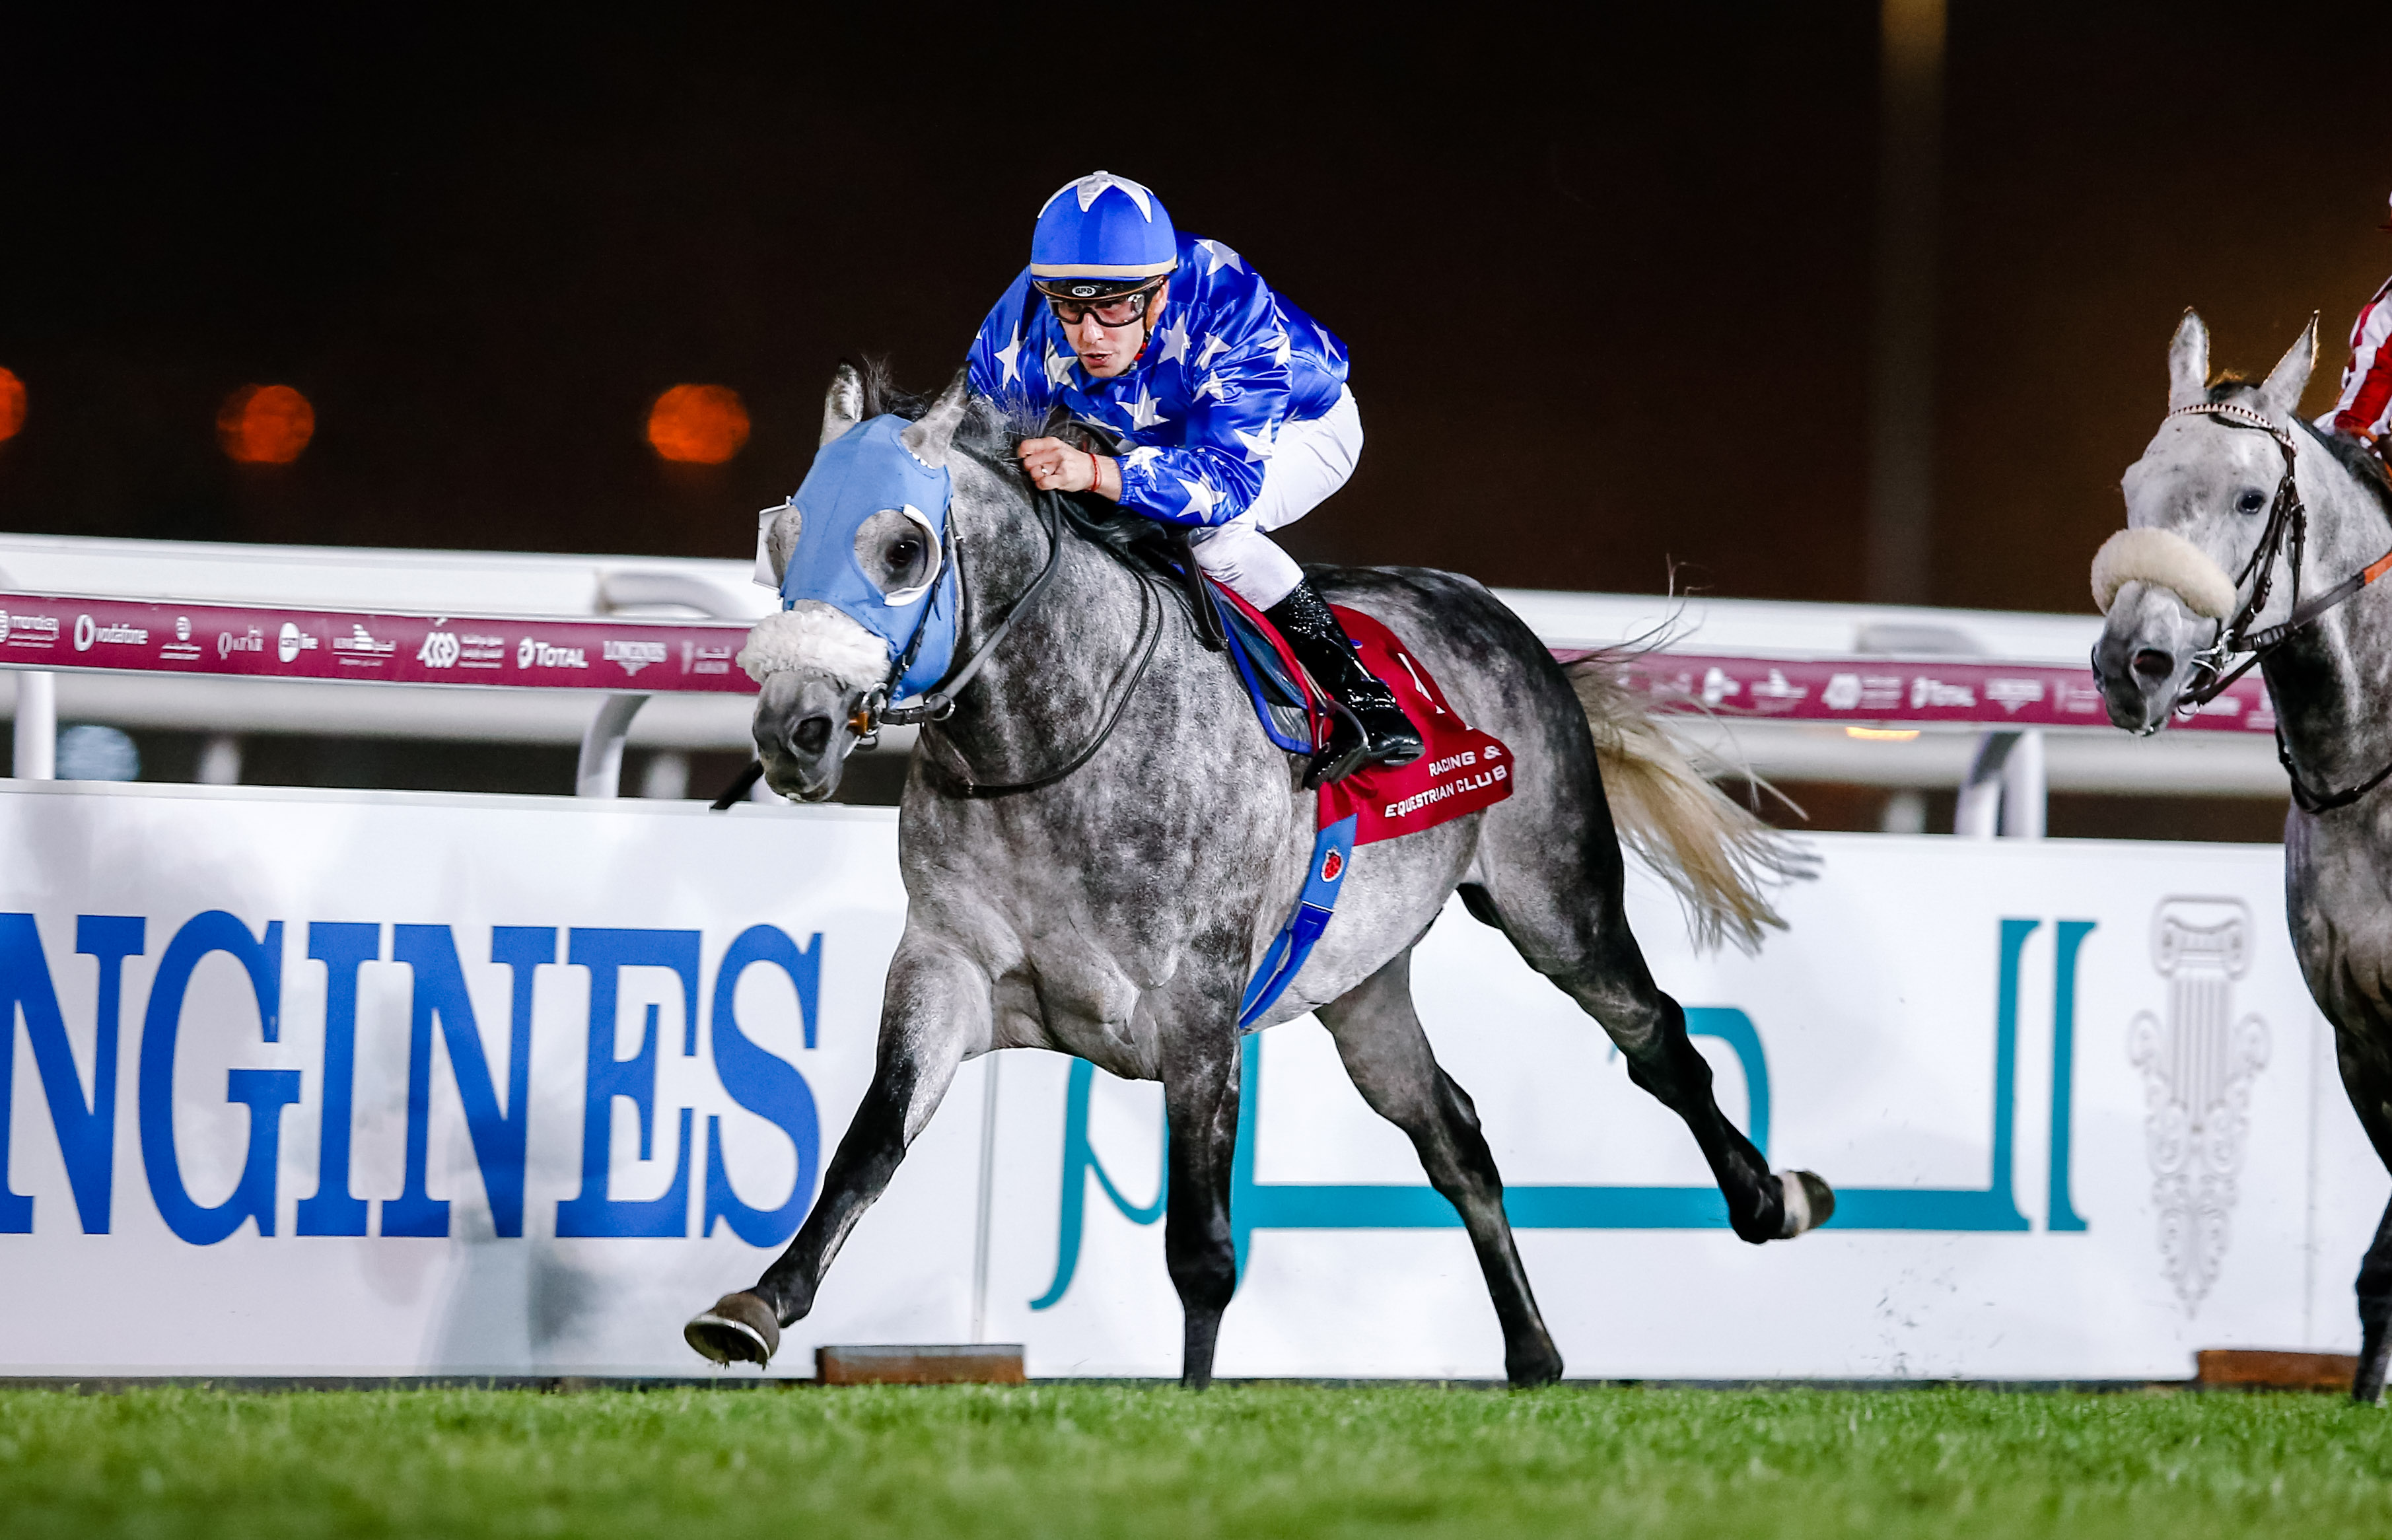 QATAR GOLD SWORD - GAZWAN HOLDS ON TO HIS TITLE